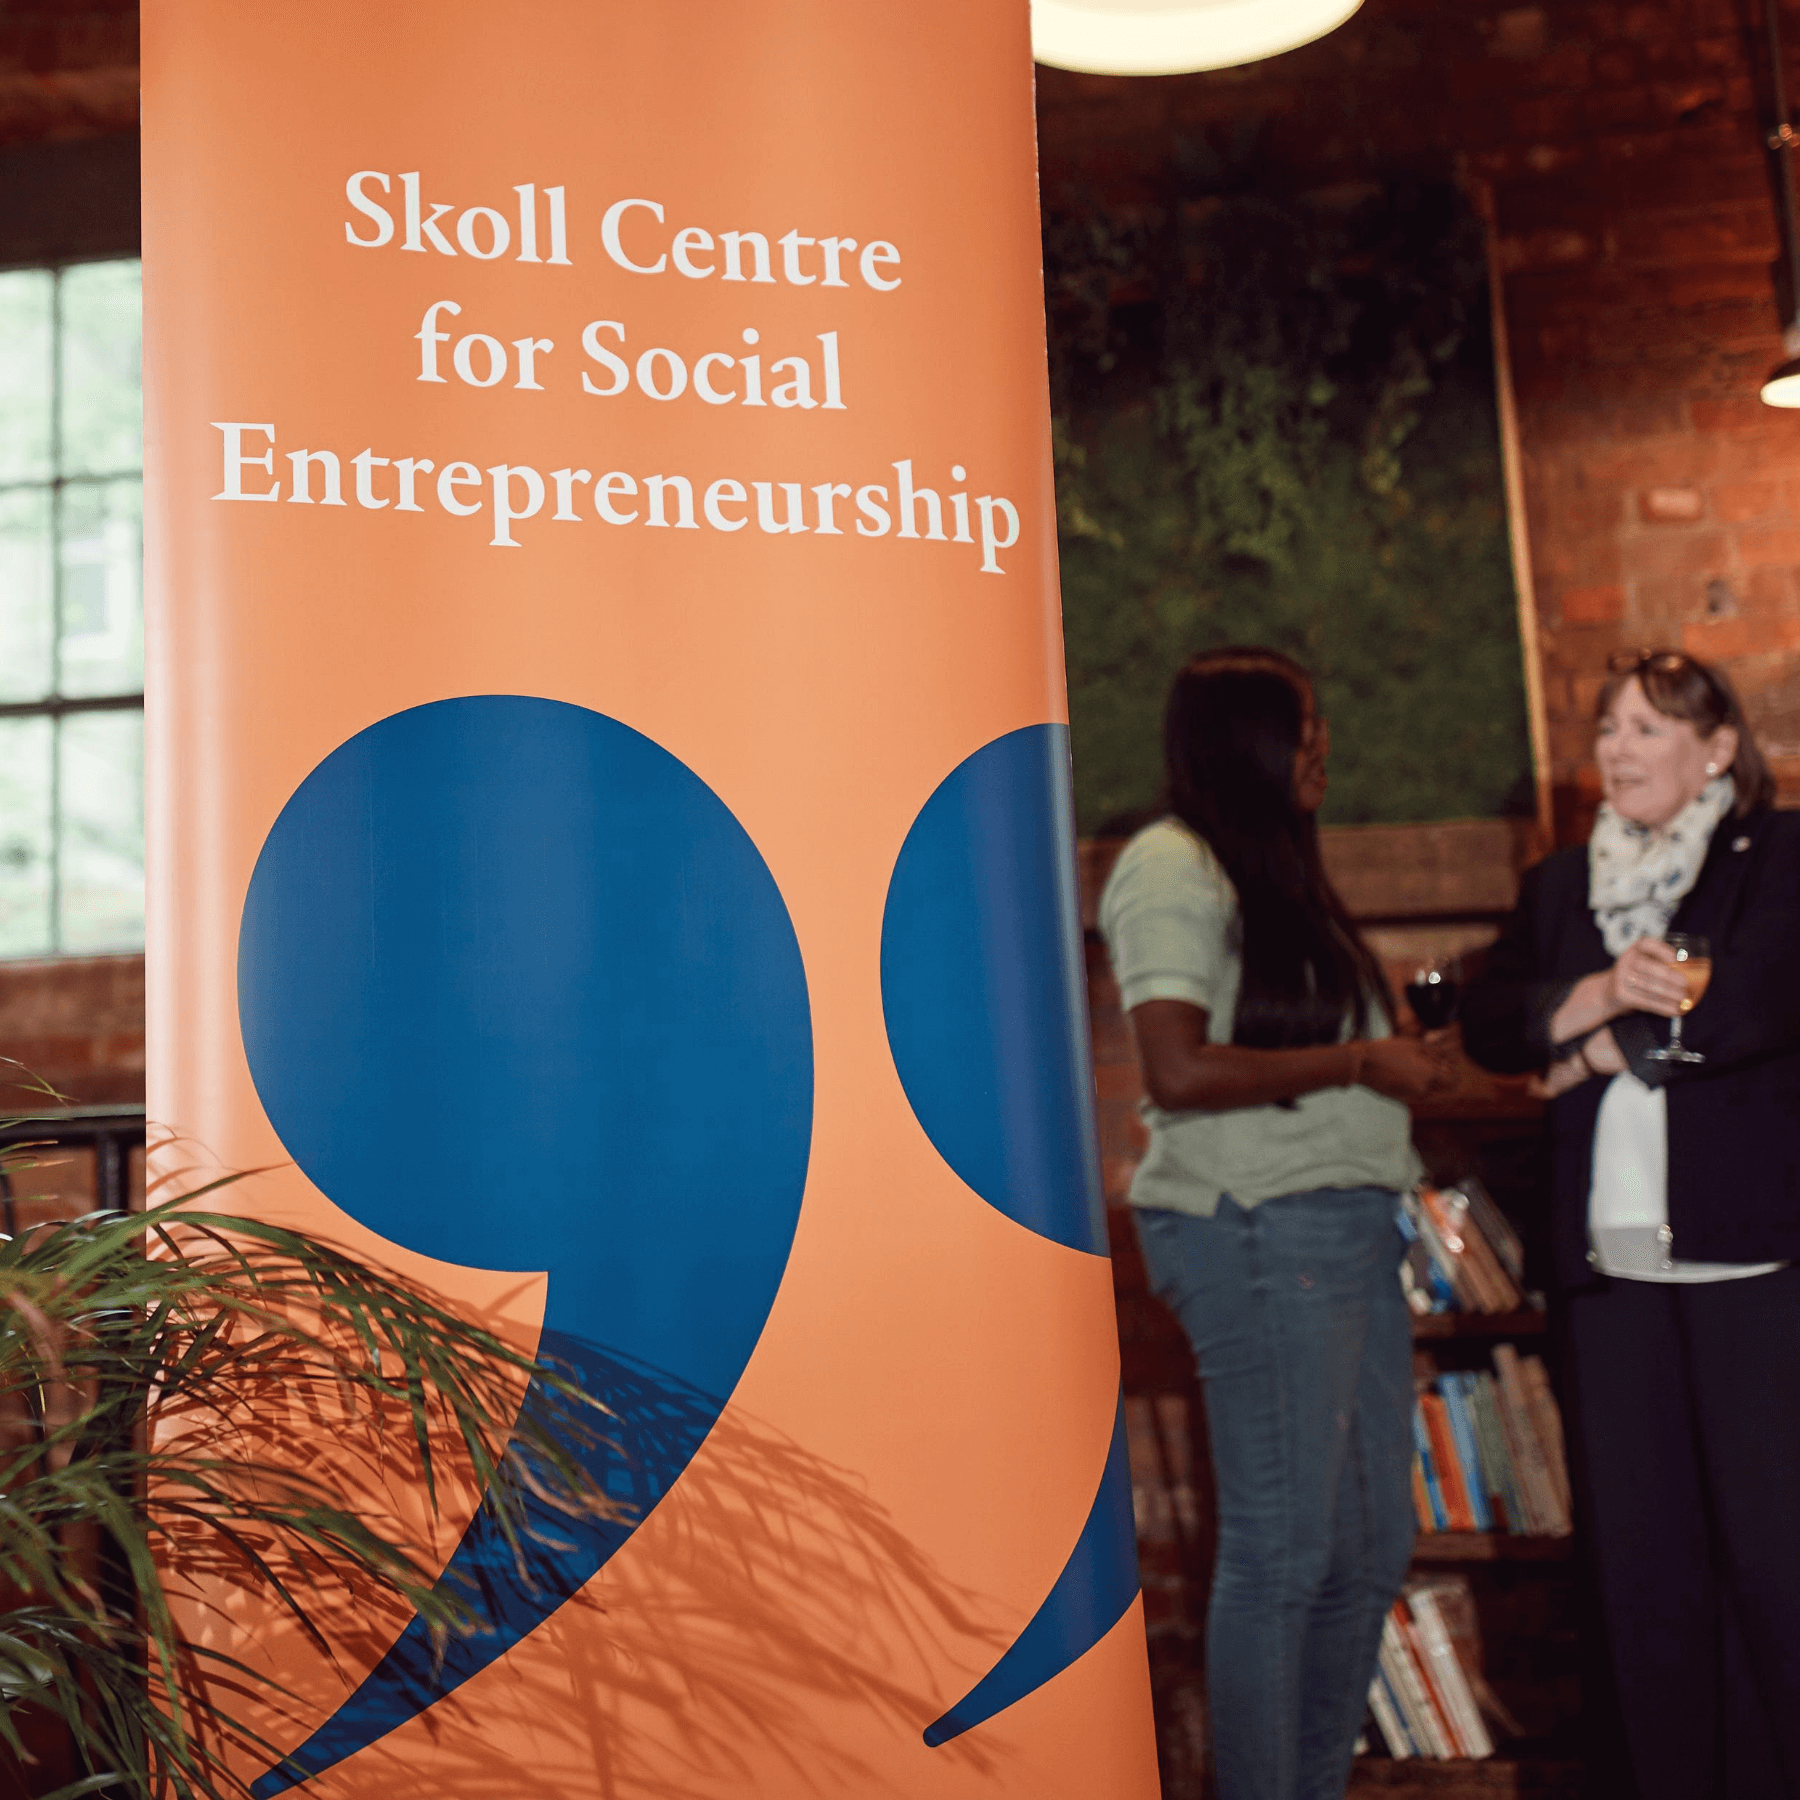 Skoll Centre for Social Entrepreneurship welcome party